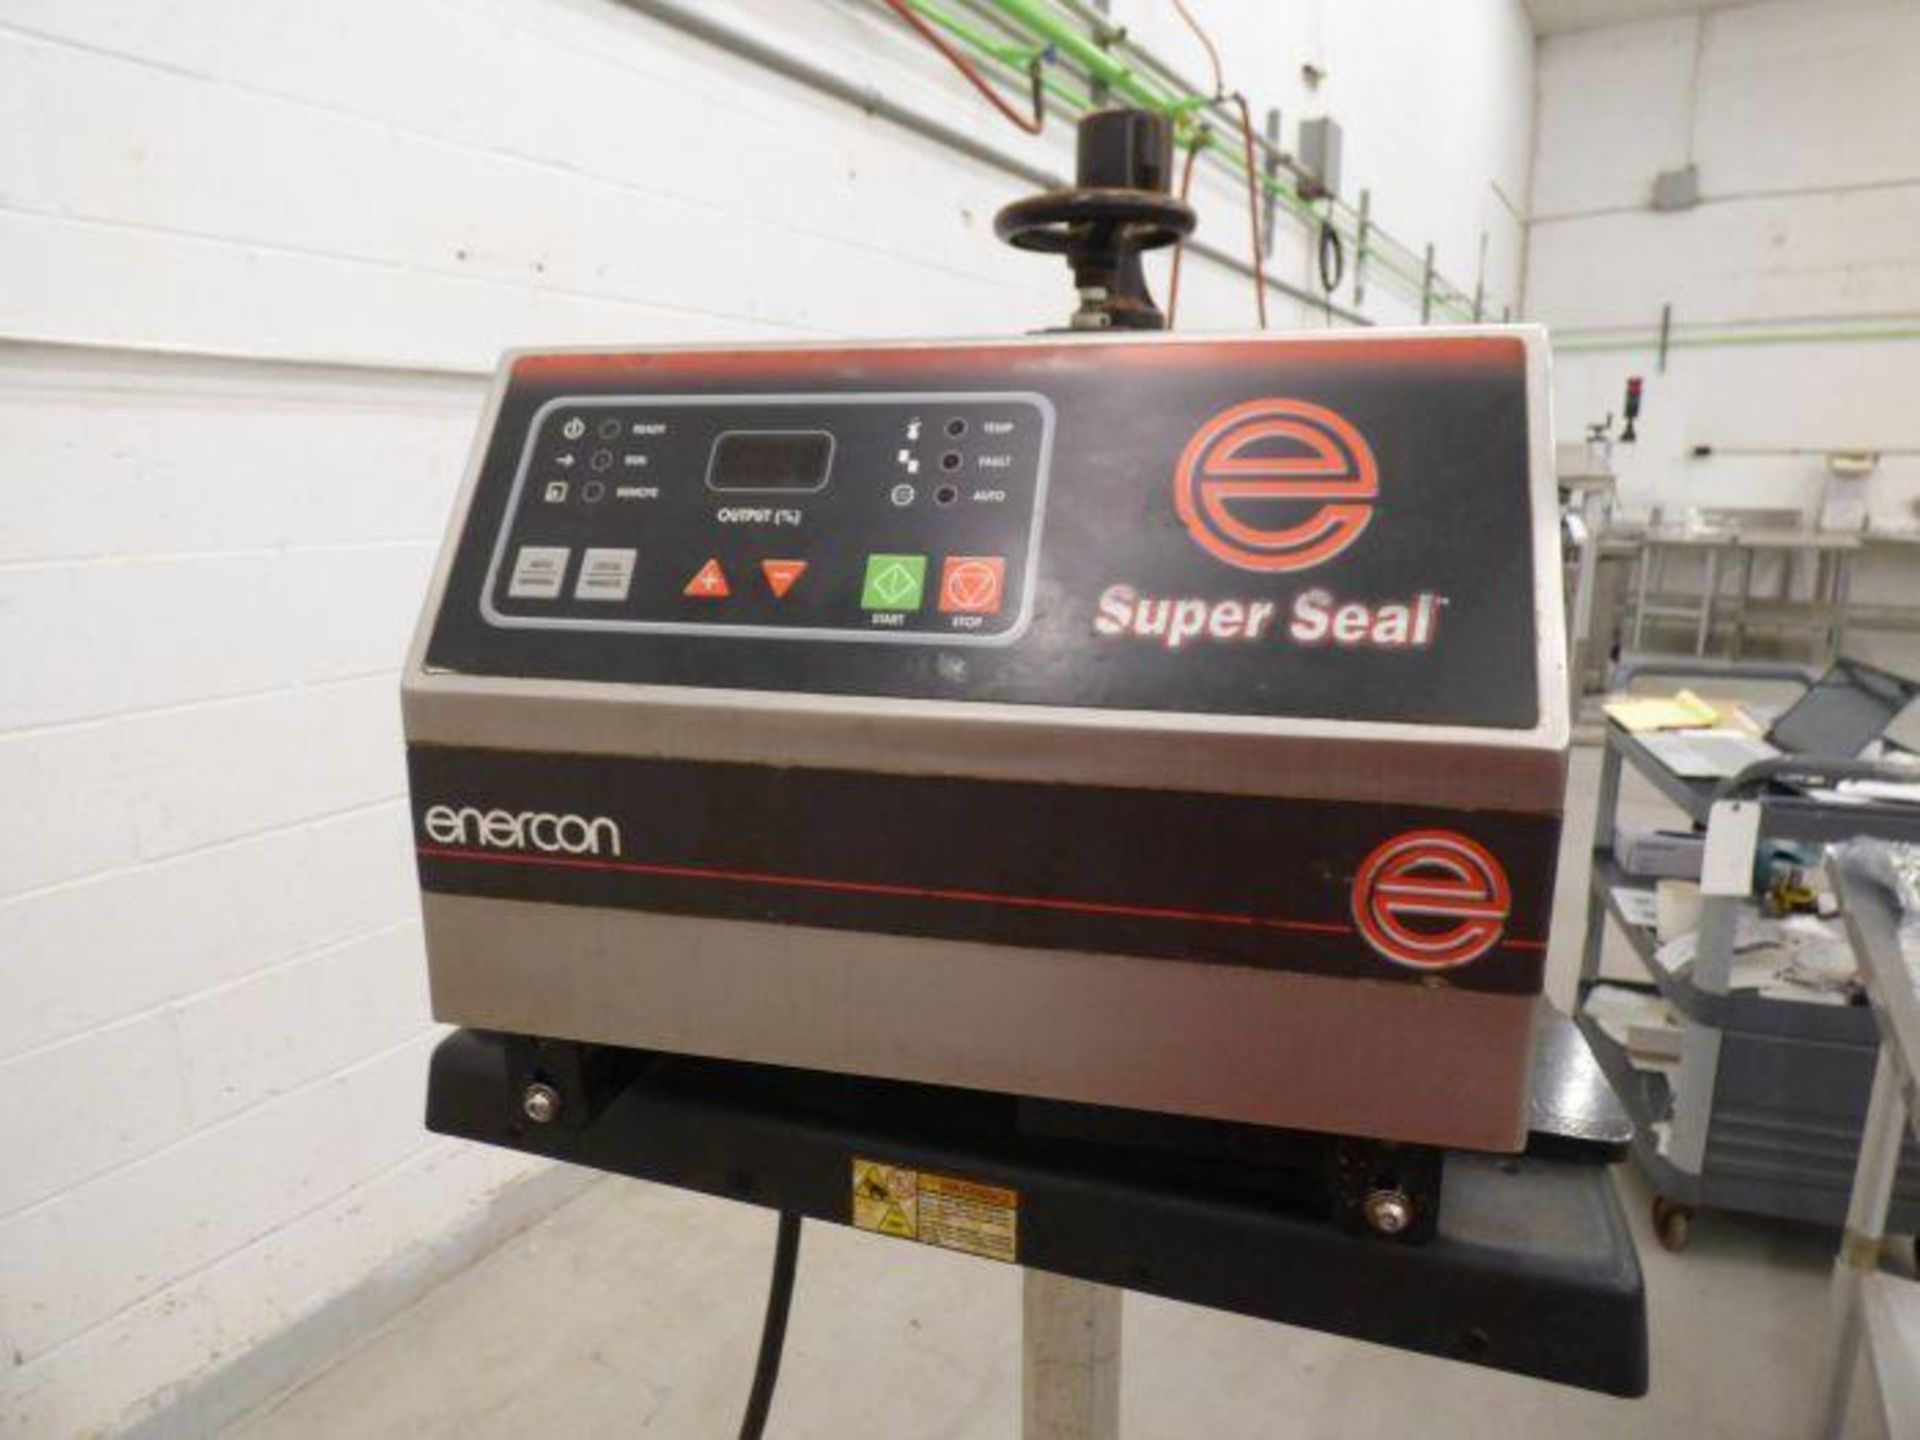 Enercon Super Seal Touch 100 with Spare Parts - Image 5 of 17